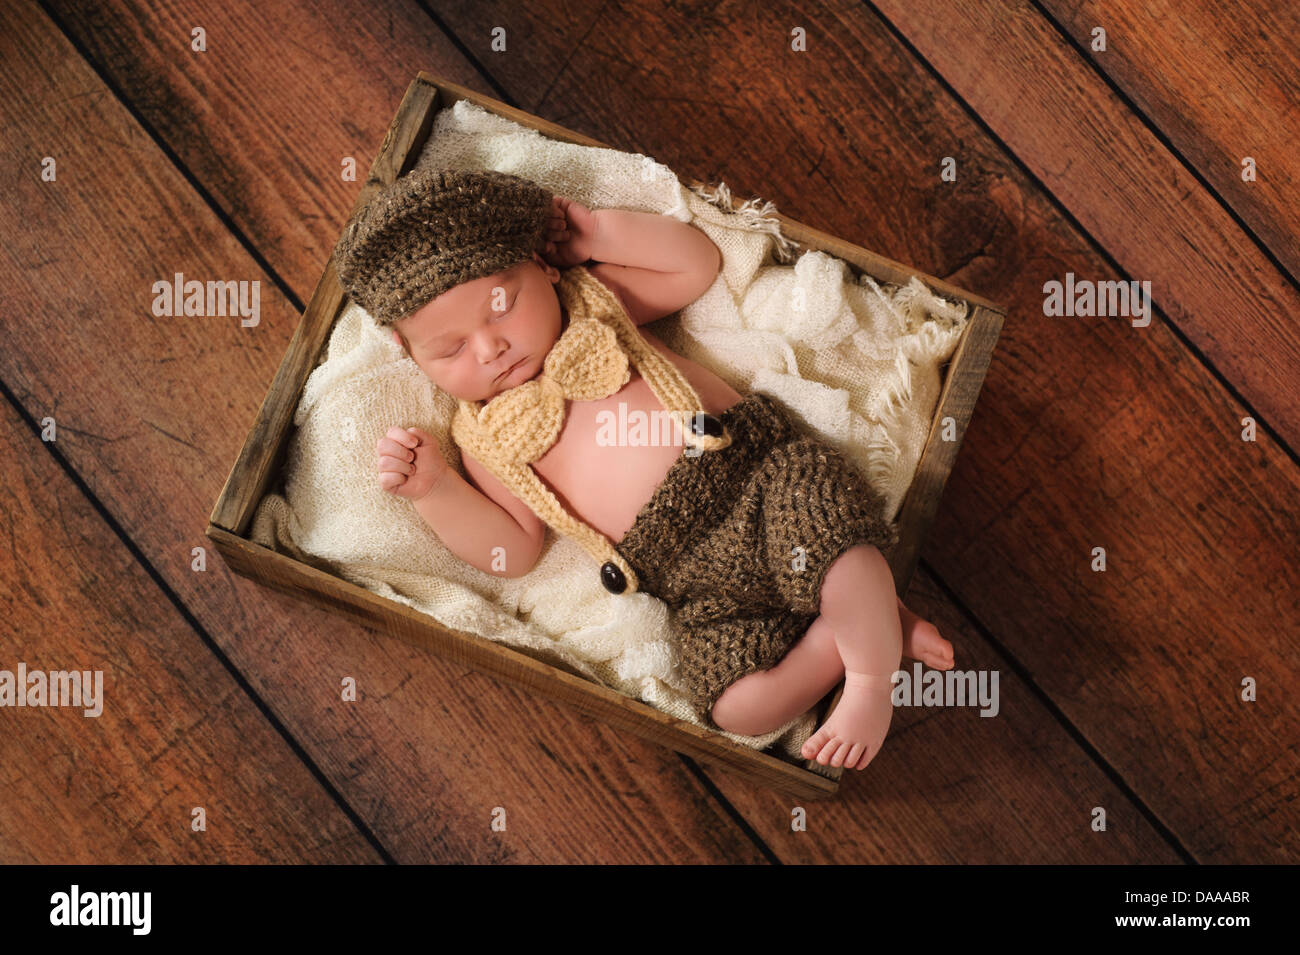 Newborn Baby Boy Wearing a Hat, Bow Tie and Suspenders - Stock Image